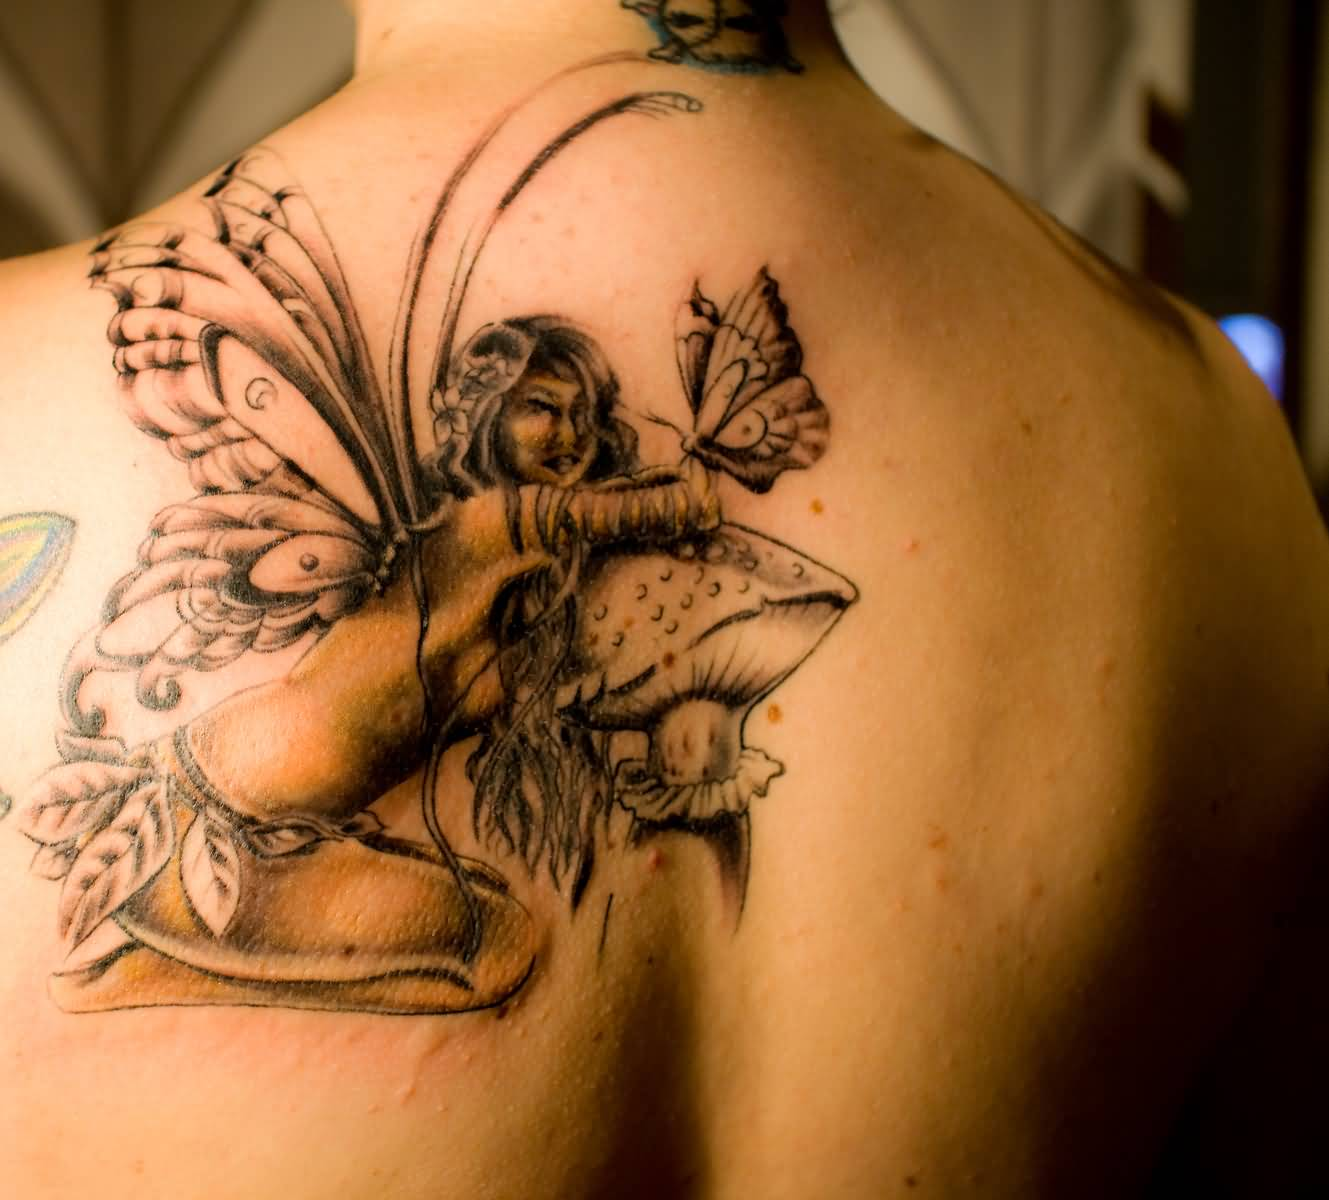 56 fairy tattoos on back for Tattoos on back